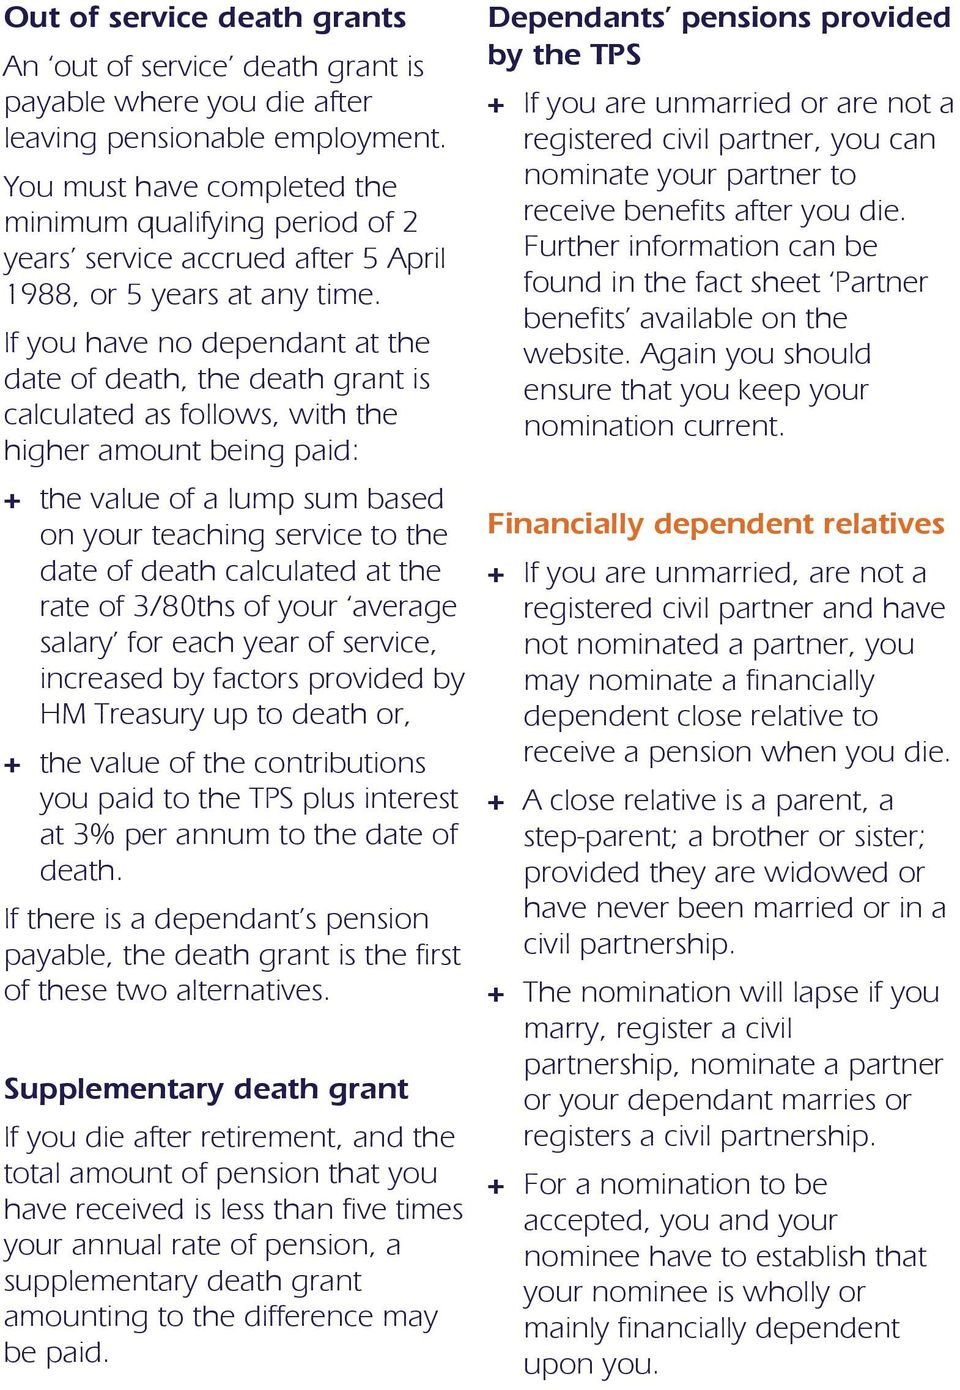 If you have no dependant at the date of death, the death grant is calculated as follows, with the higher amount being paid: + the value of a lump sum based on your teaching service to the date of